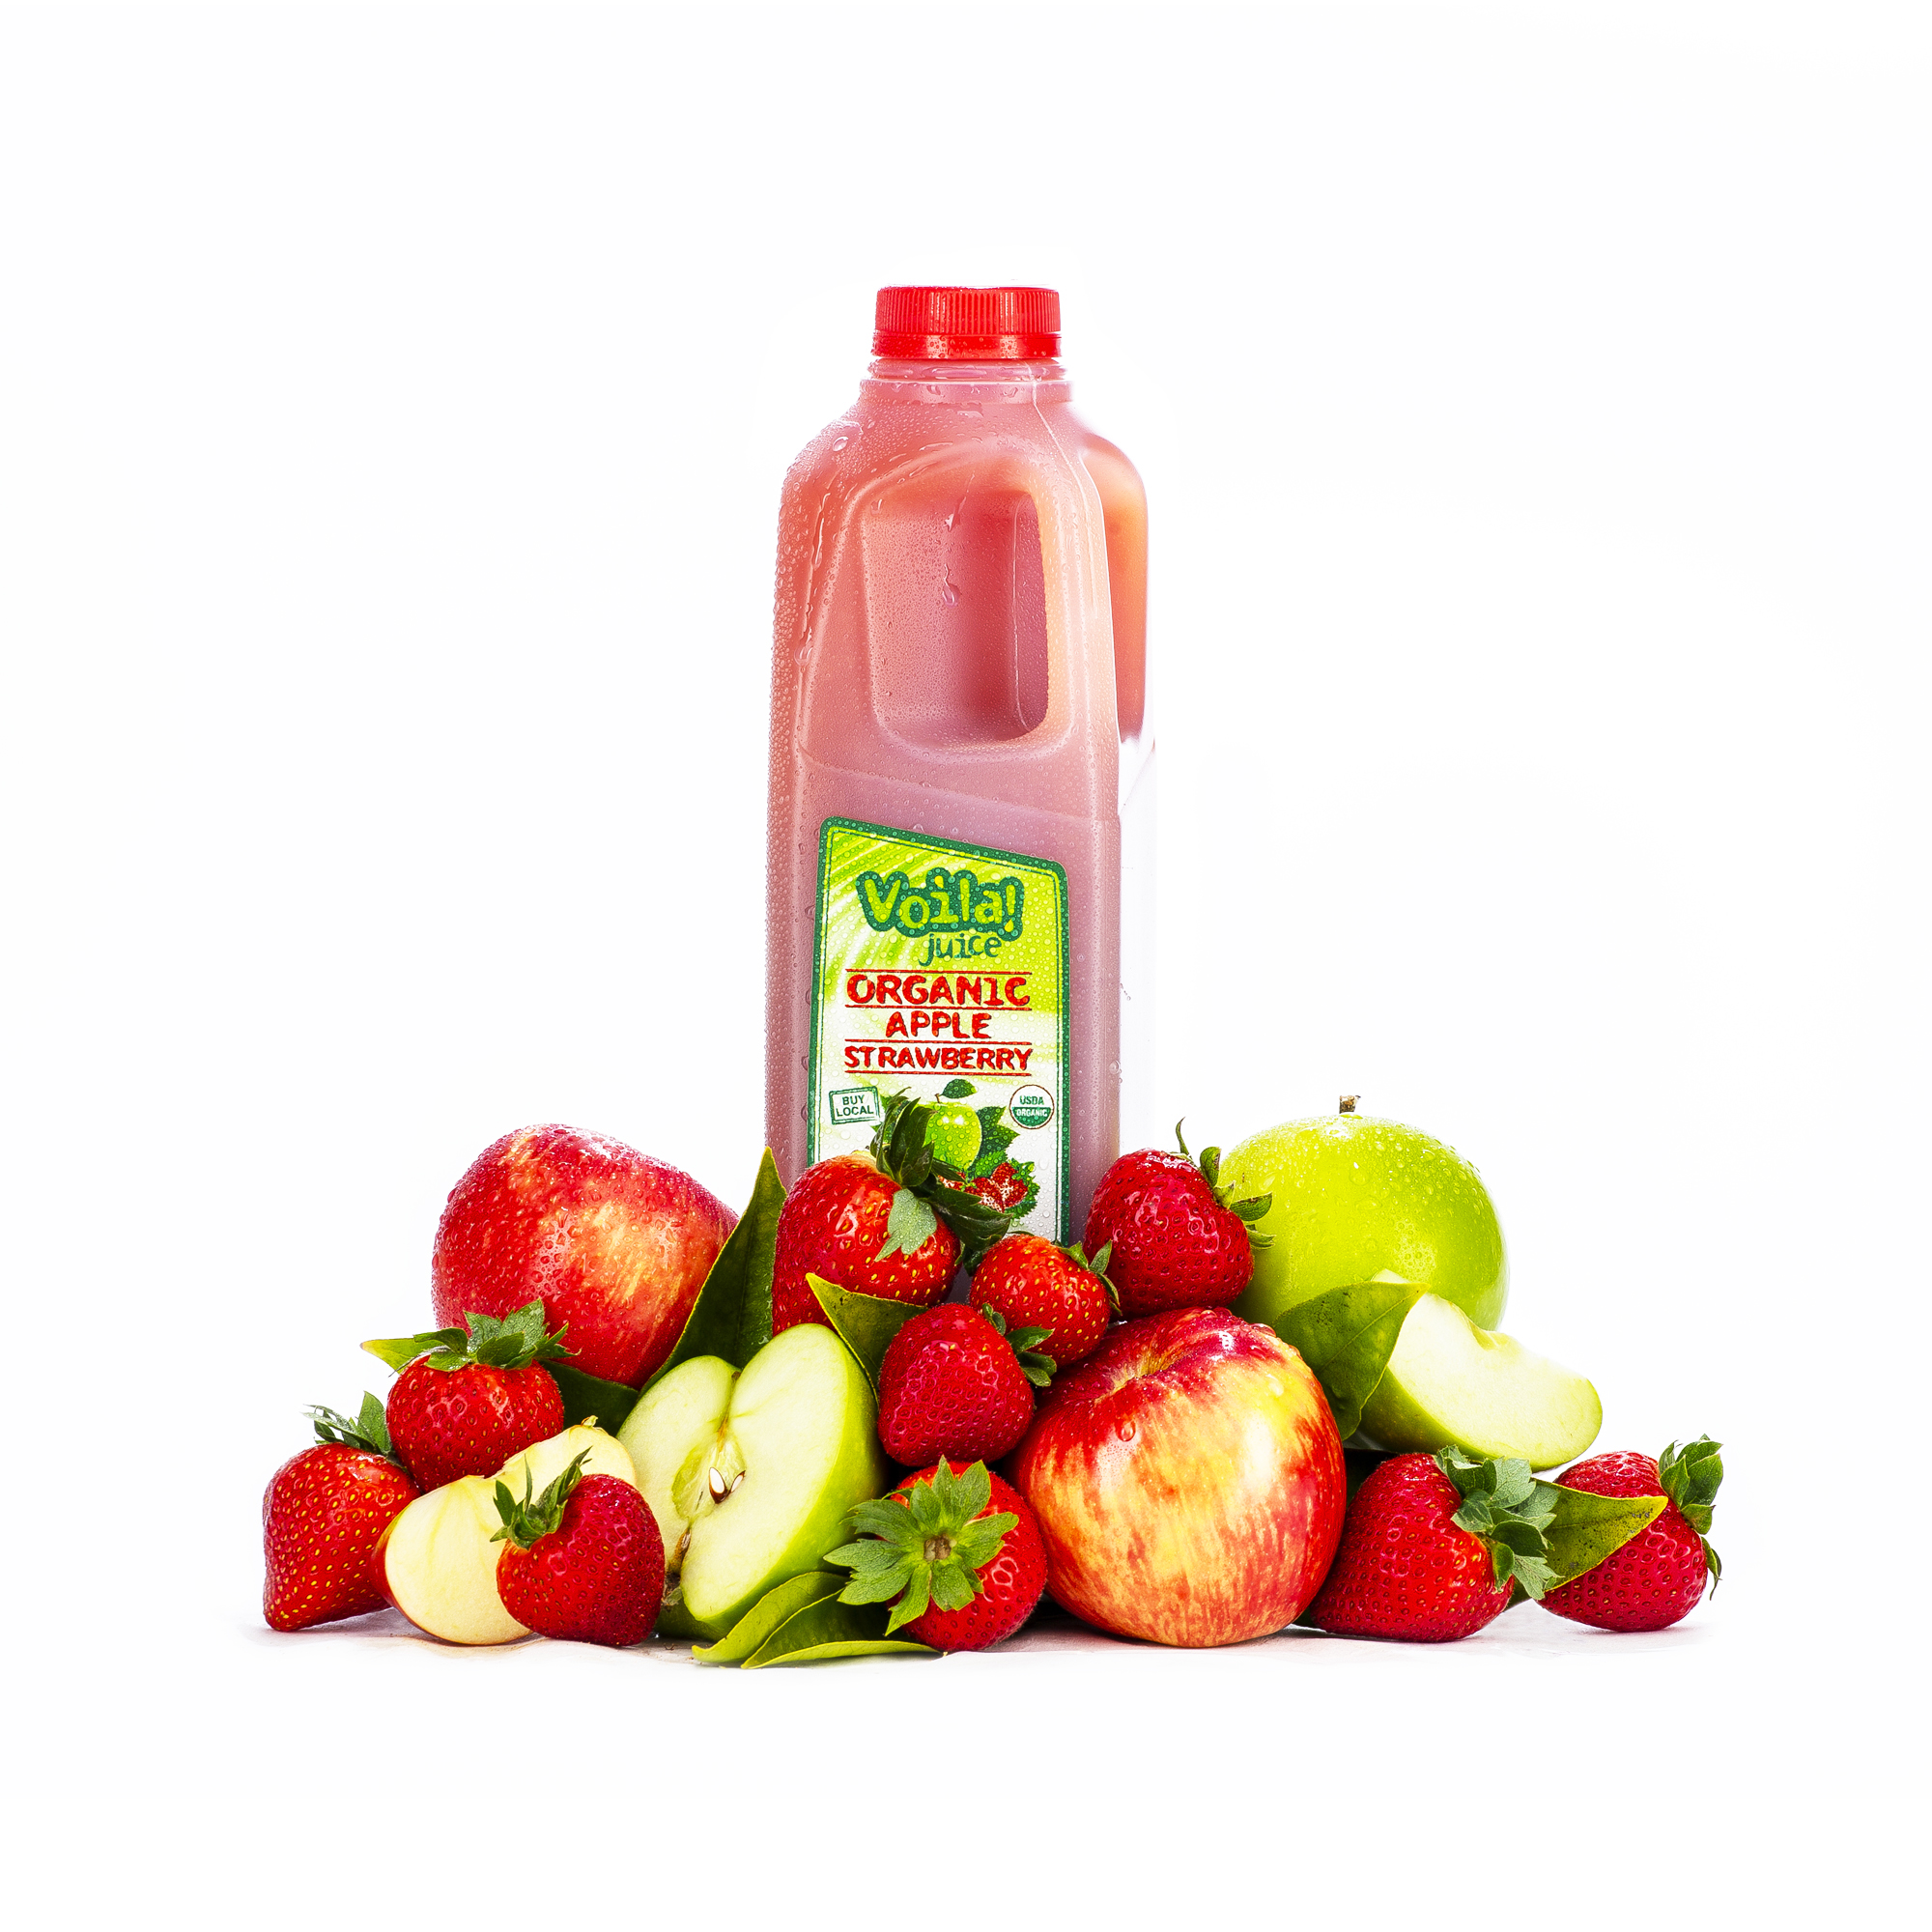 ORGANIC APPLE STRAWBERRY copy.jpg